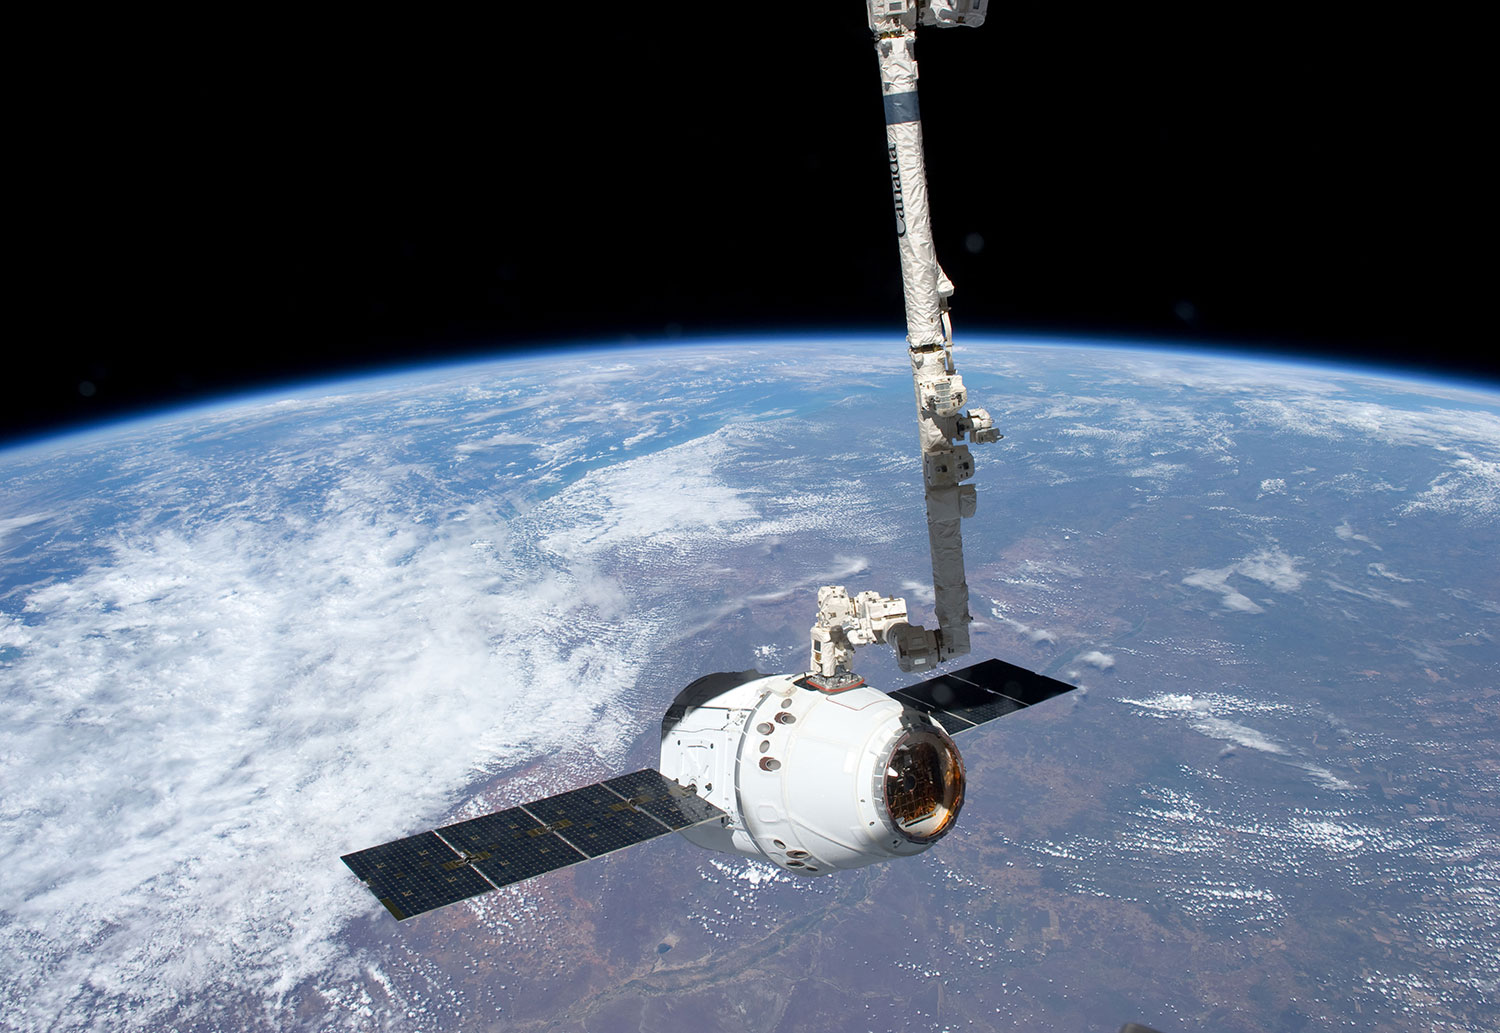 Dragon Spacecraft grappled by SSRMS